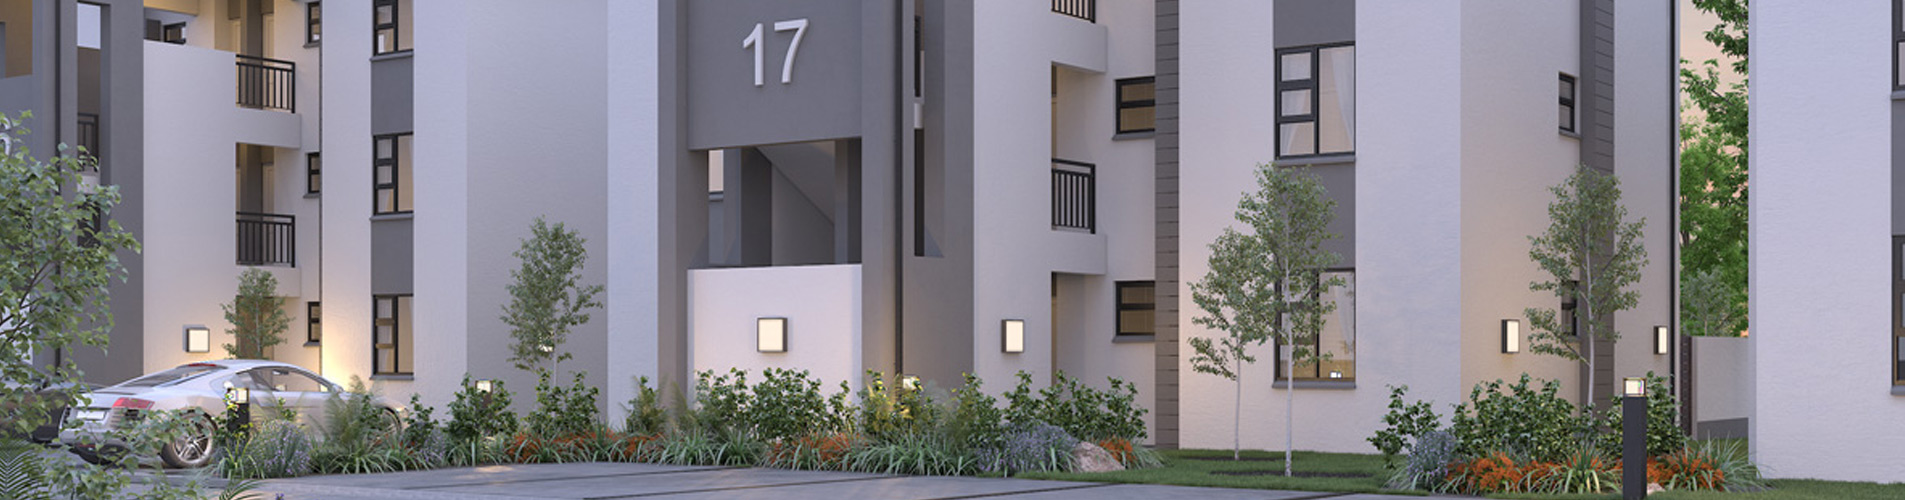 Apartments in Copperhill Estate Located in Pinehaven